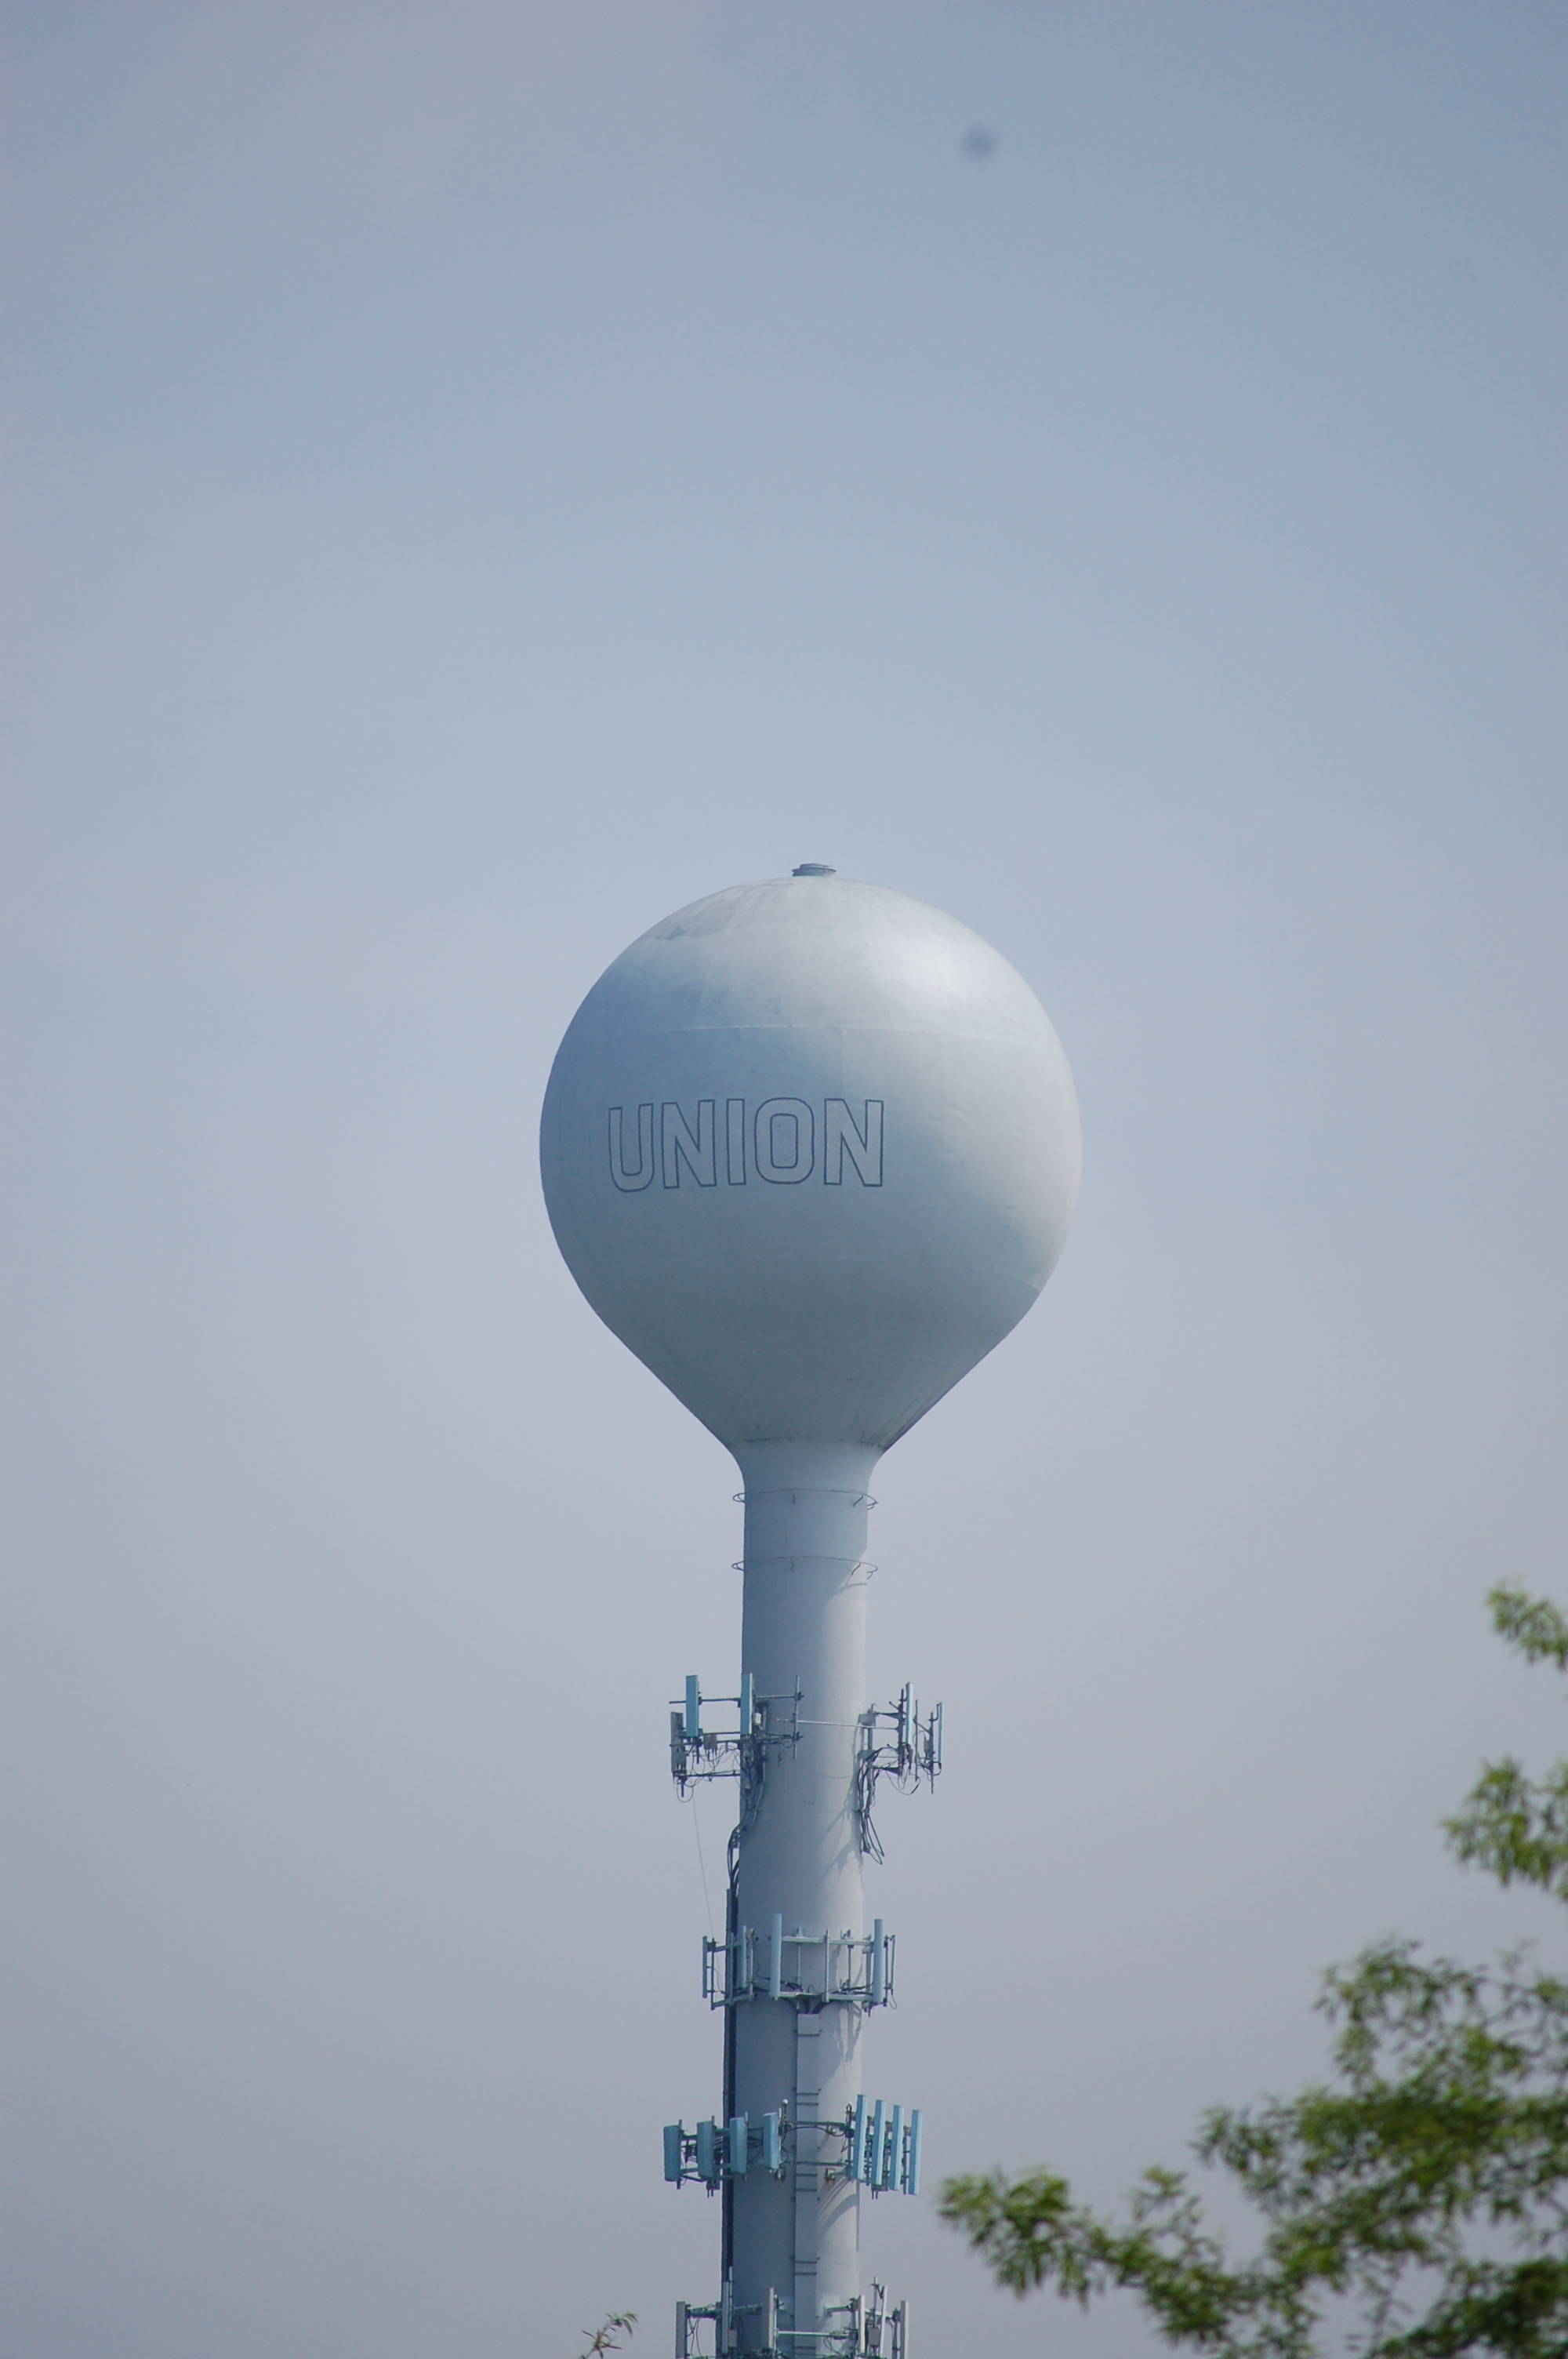 5cd0c54aa65e3617758e_c29a0505a20d8558b41c_union_water_tower.jpg